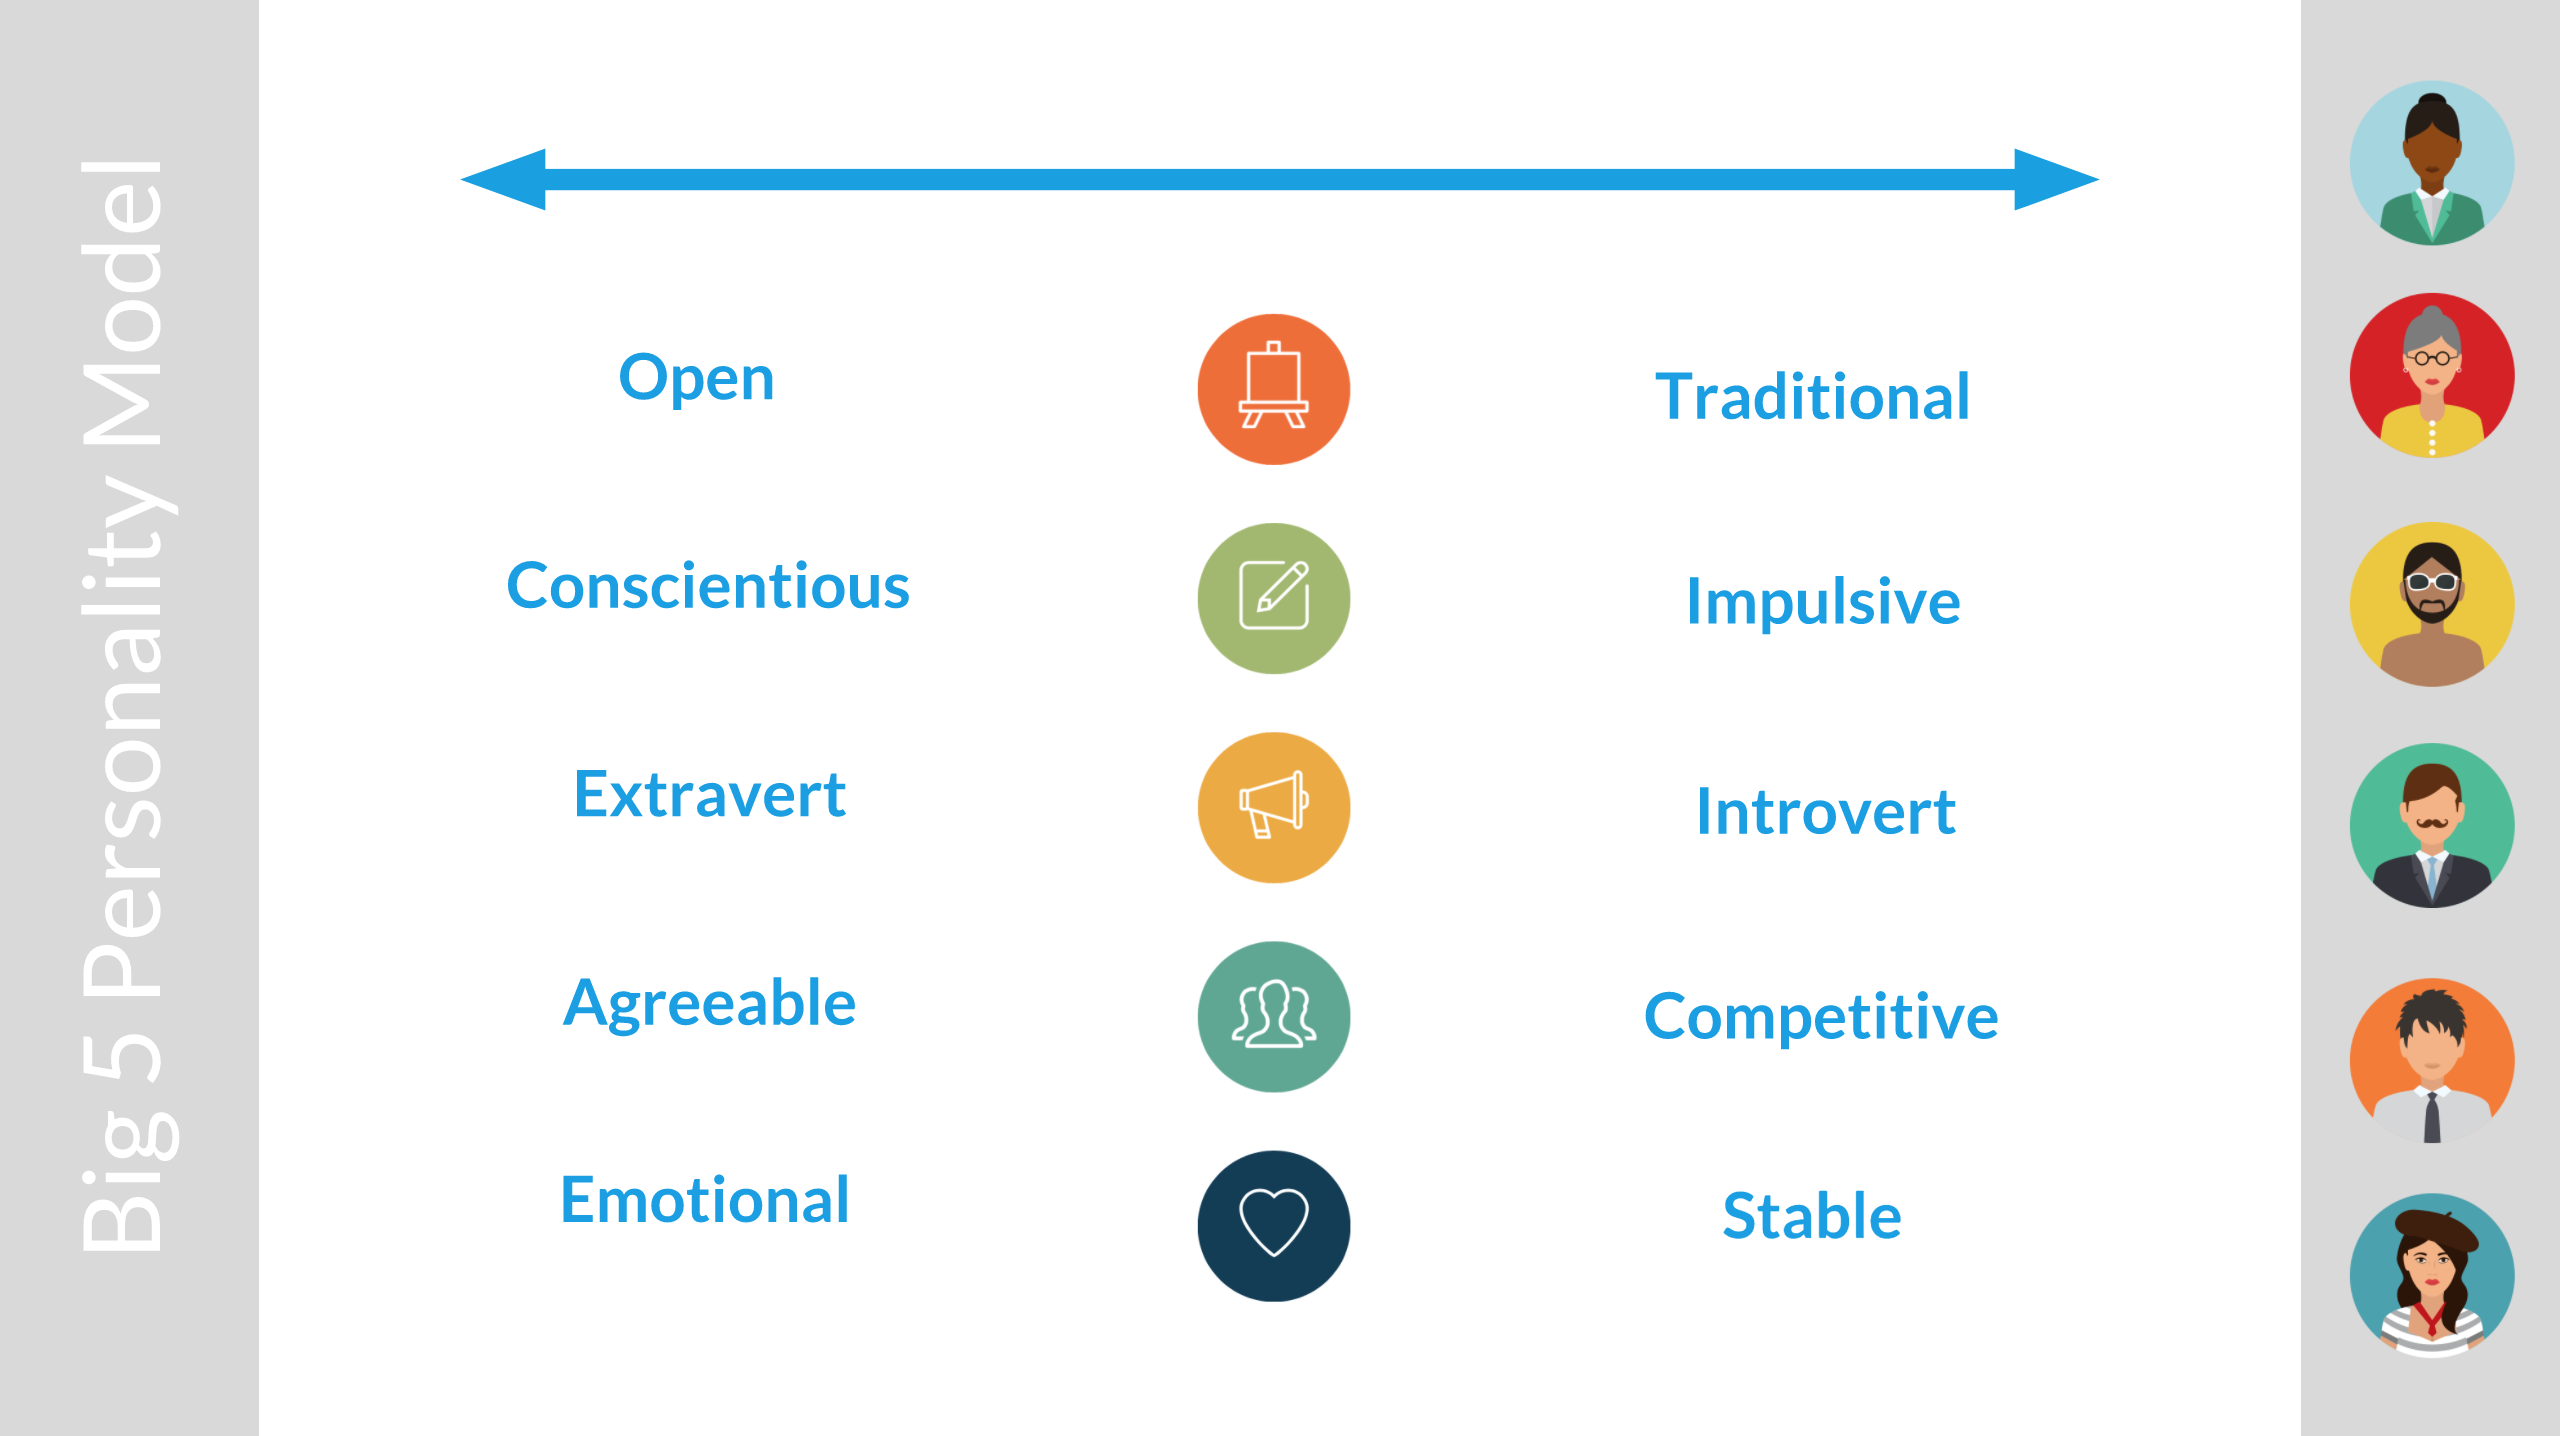 The Big Five personality model